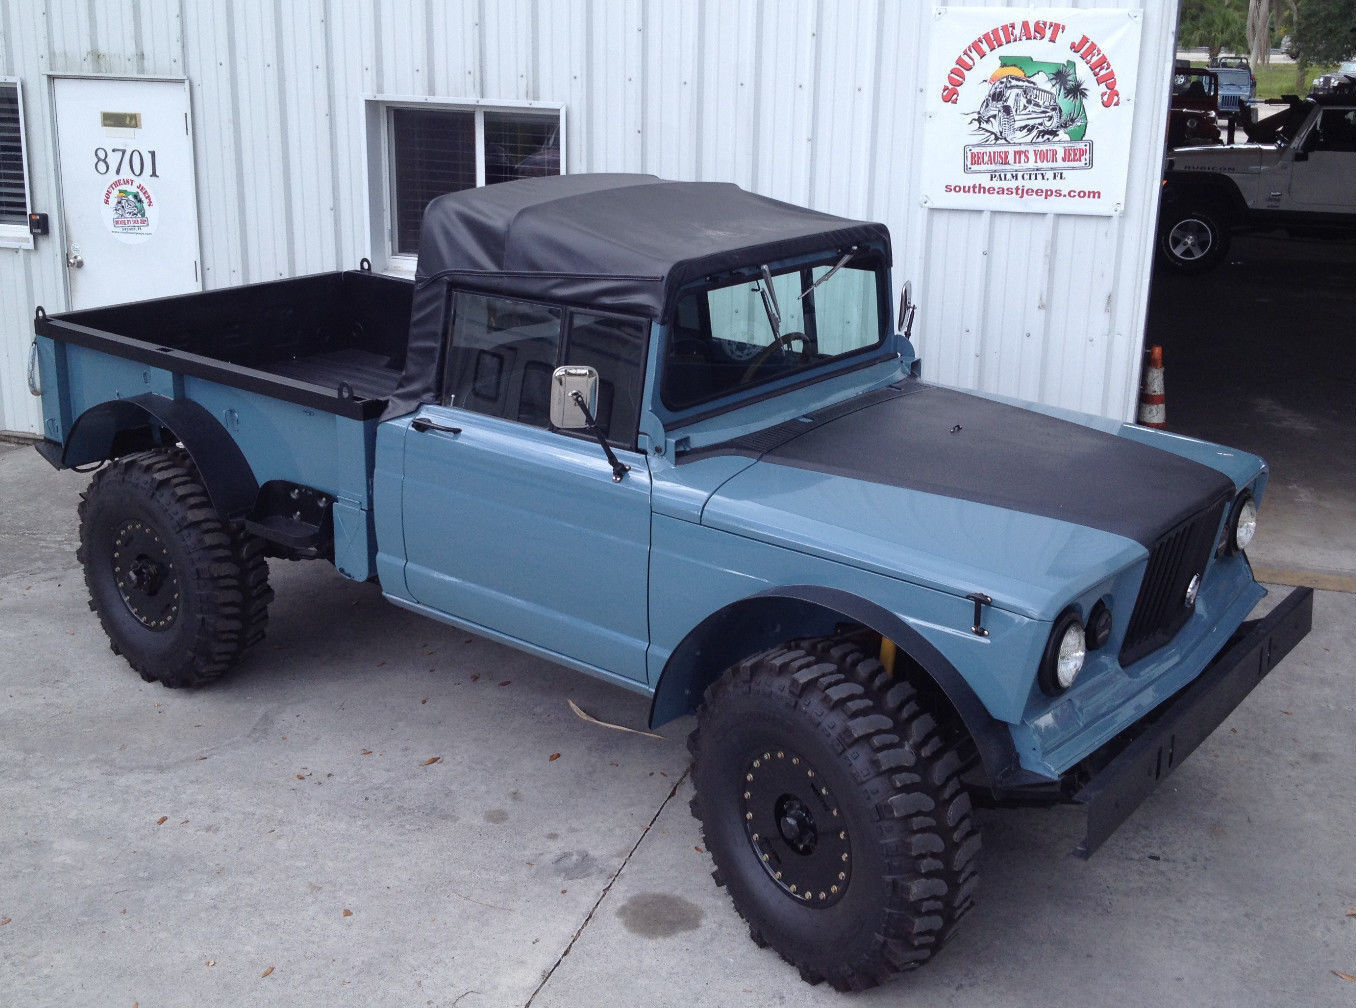 1967 Jeep Kaiser M715  1967 Kaiser-Jeep M715 5/4 1.25-ton Utility Truck Completely Restored S/N 17511